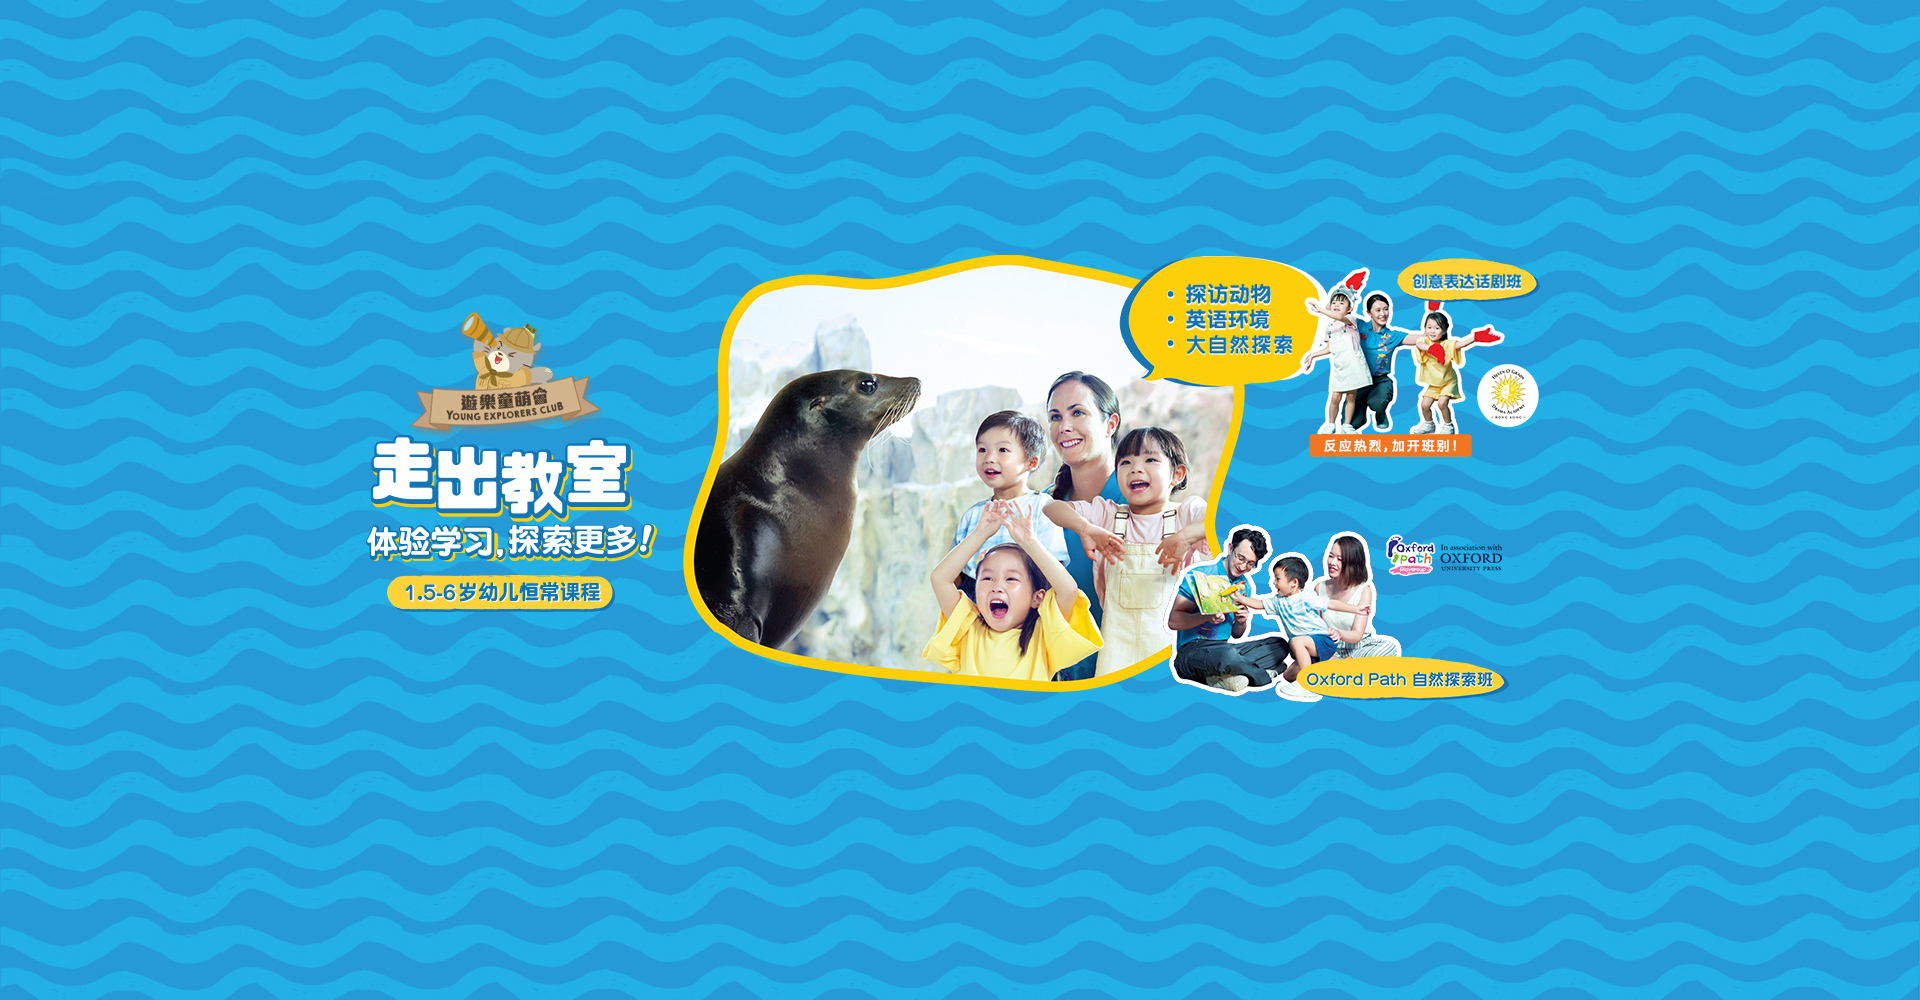 https://media.oceanpark.cn/files/s3fs-public/inside_banner01_desktop_sc-2_0.jpg